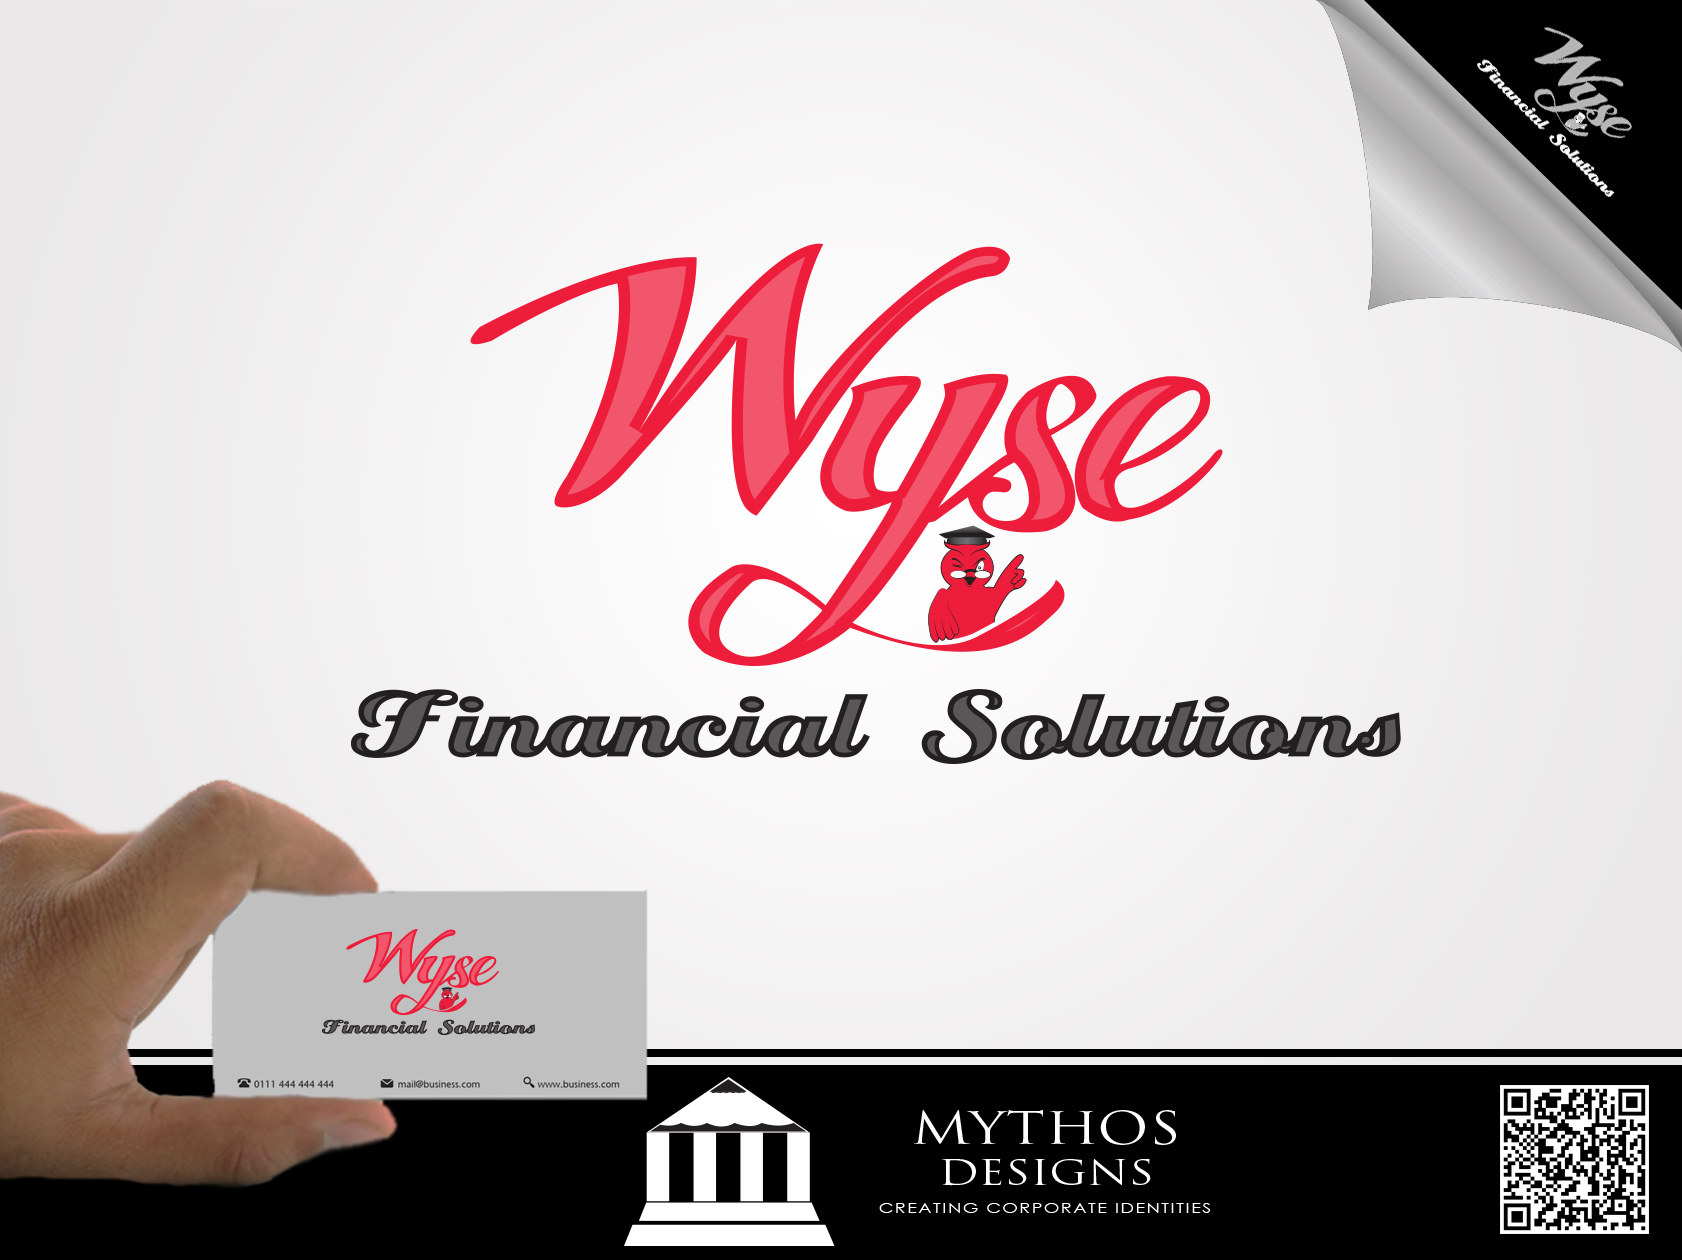 Logo Design by Mythos Designs - Entry No. 84 in the Logo Design Contest Fun Logo Design for Wyse Financial Solutions.